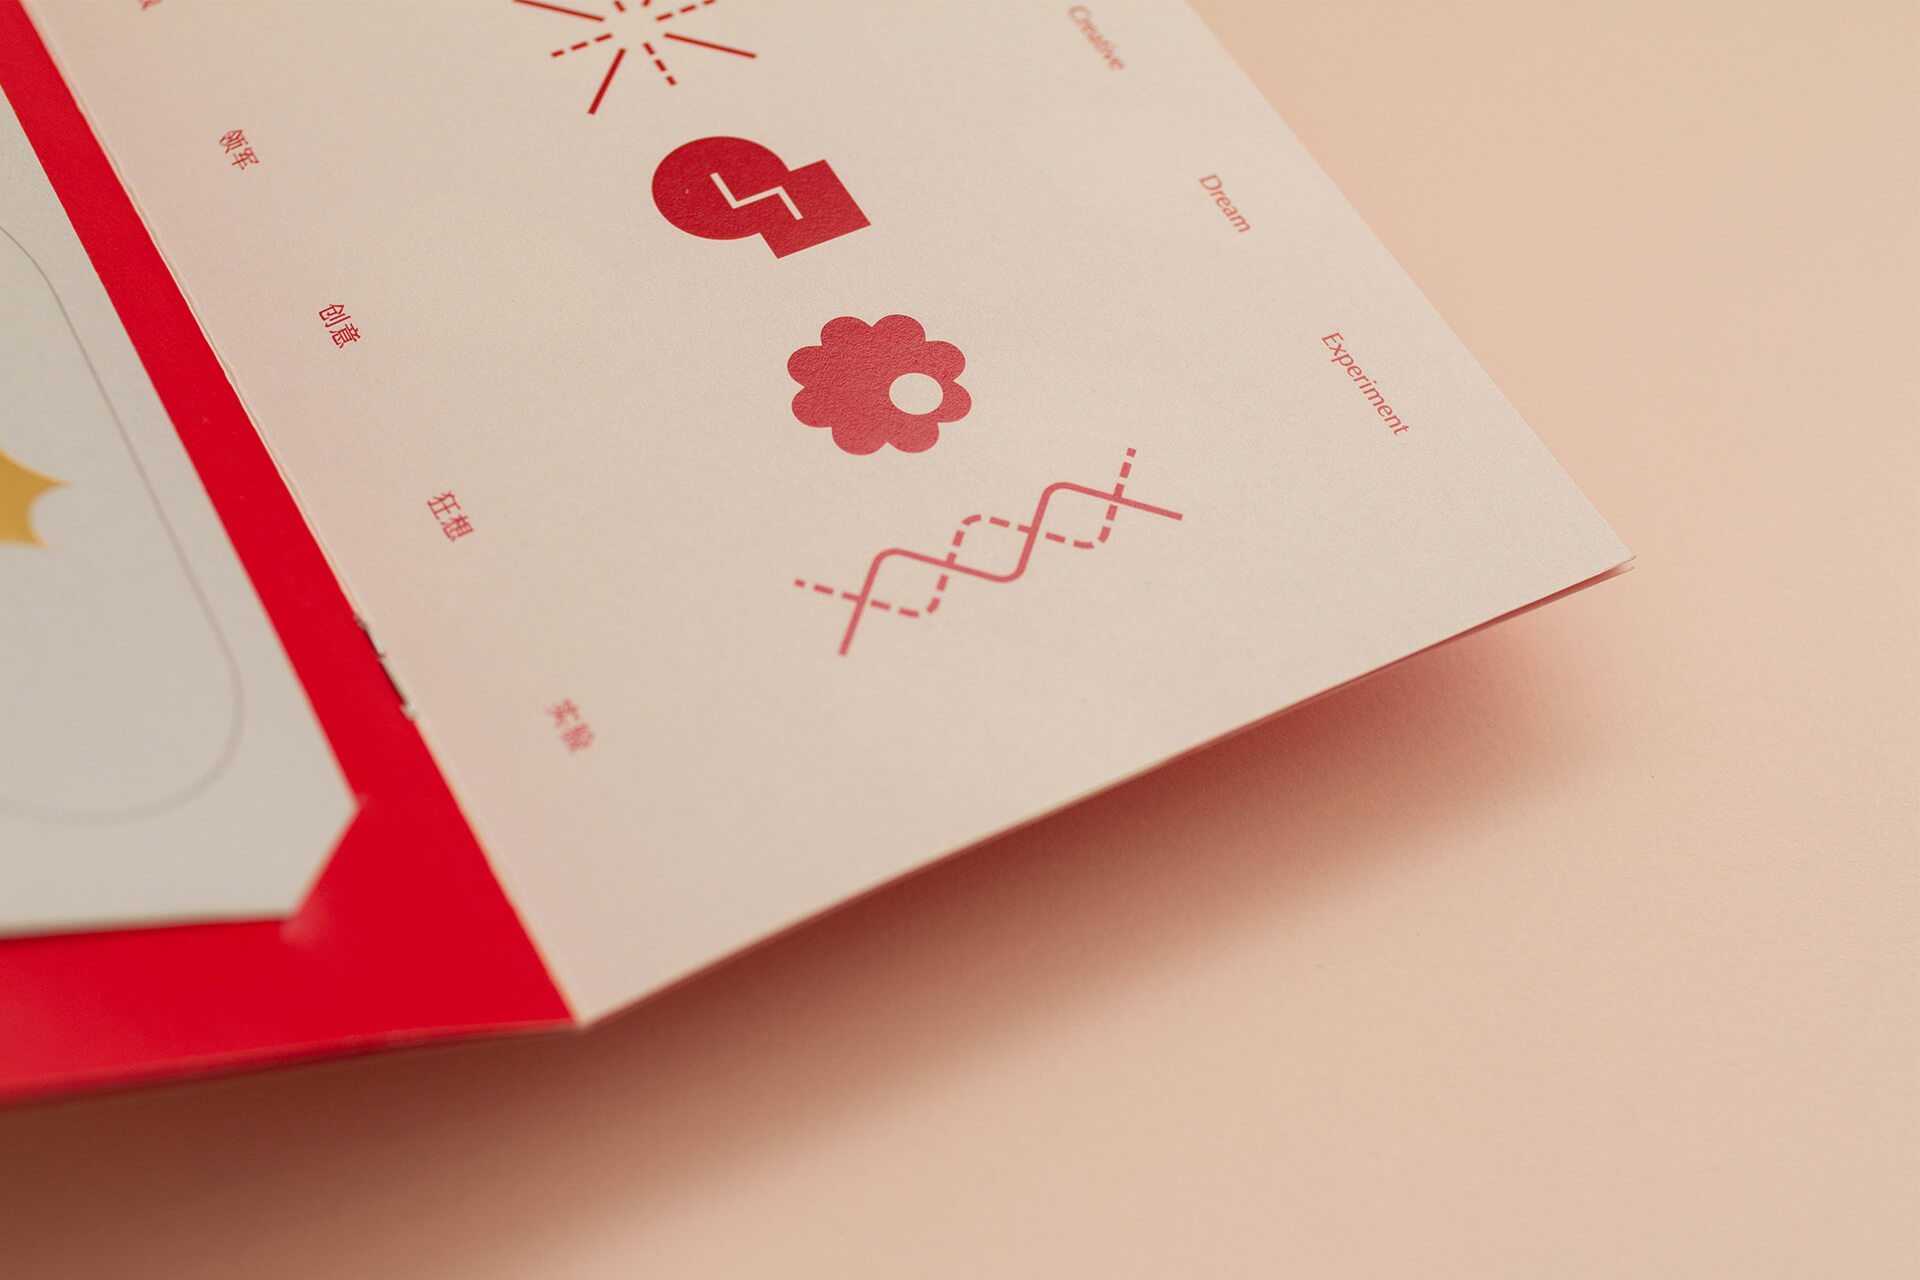 CNY 2020 Greeting Card Details & Close Up